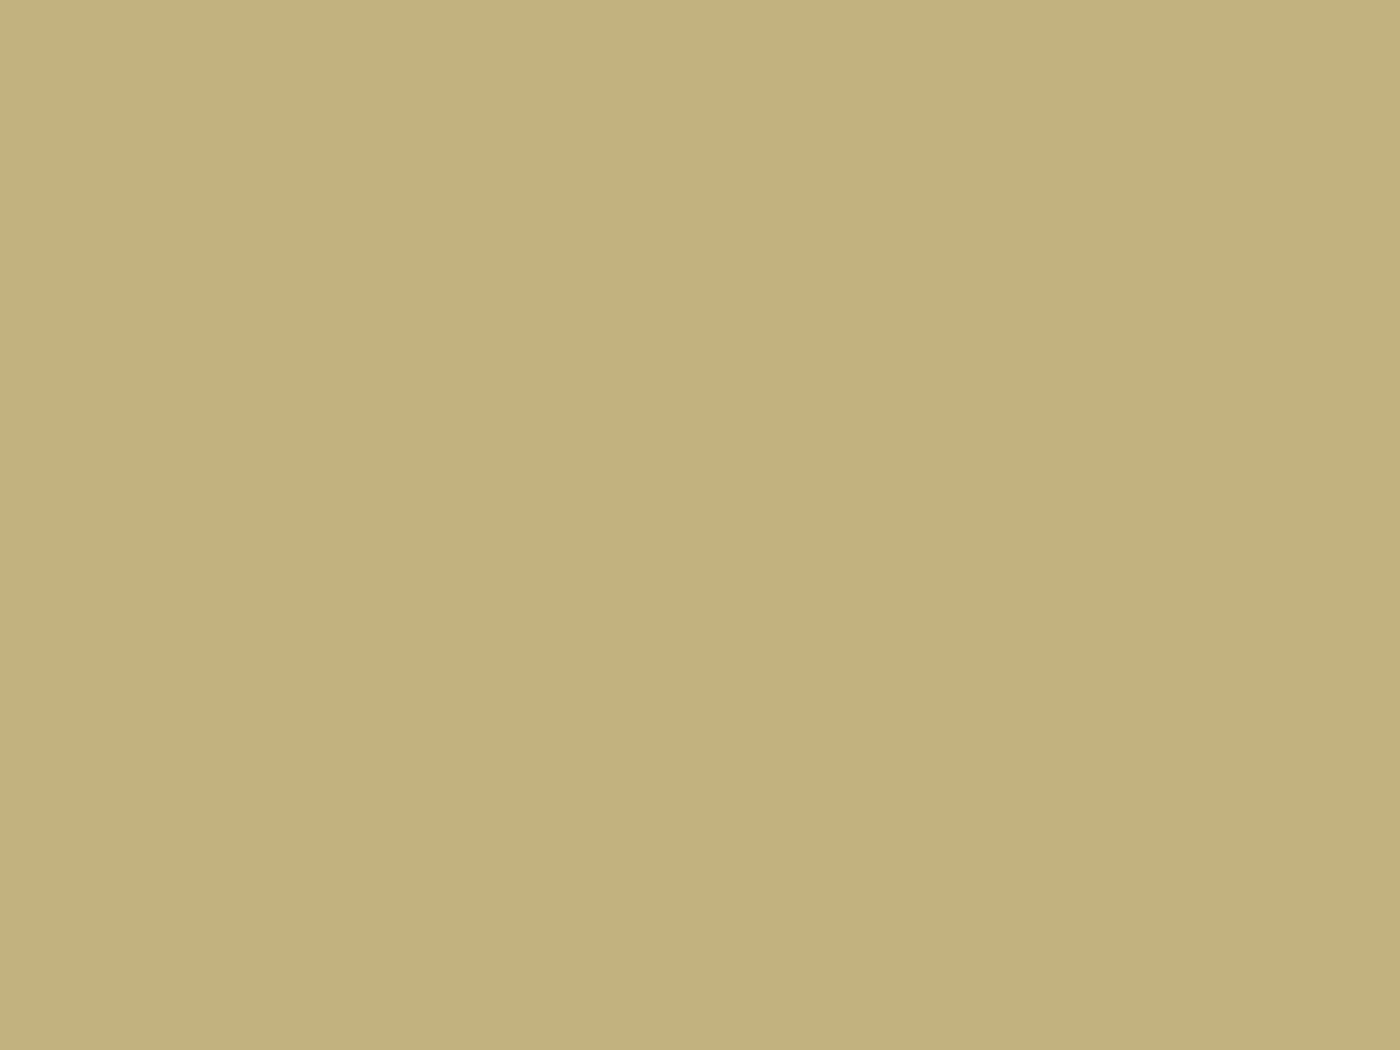 1400x1050 Sand Solid Color Background